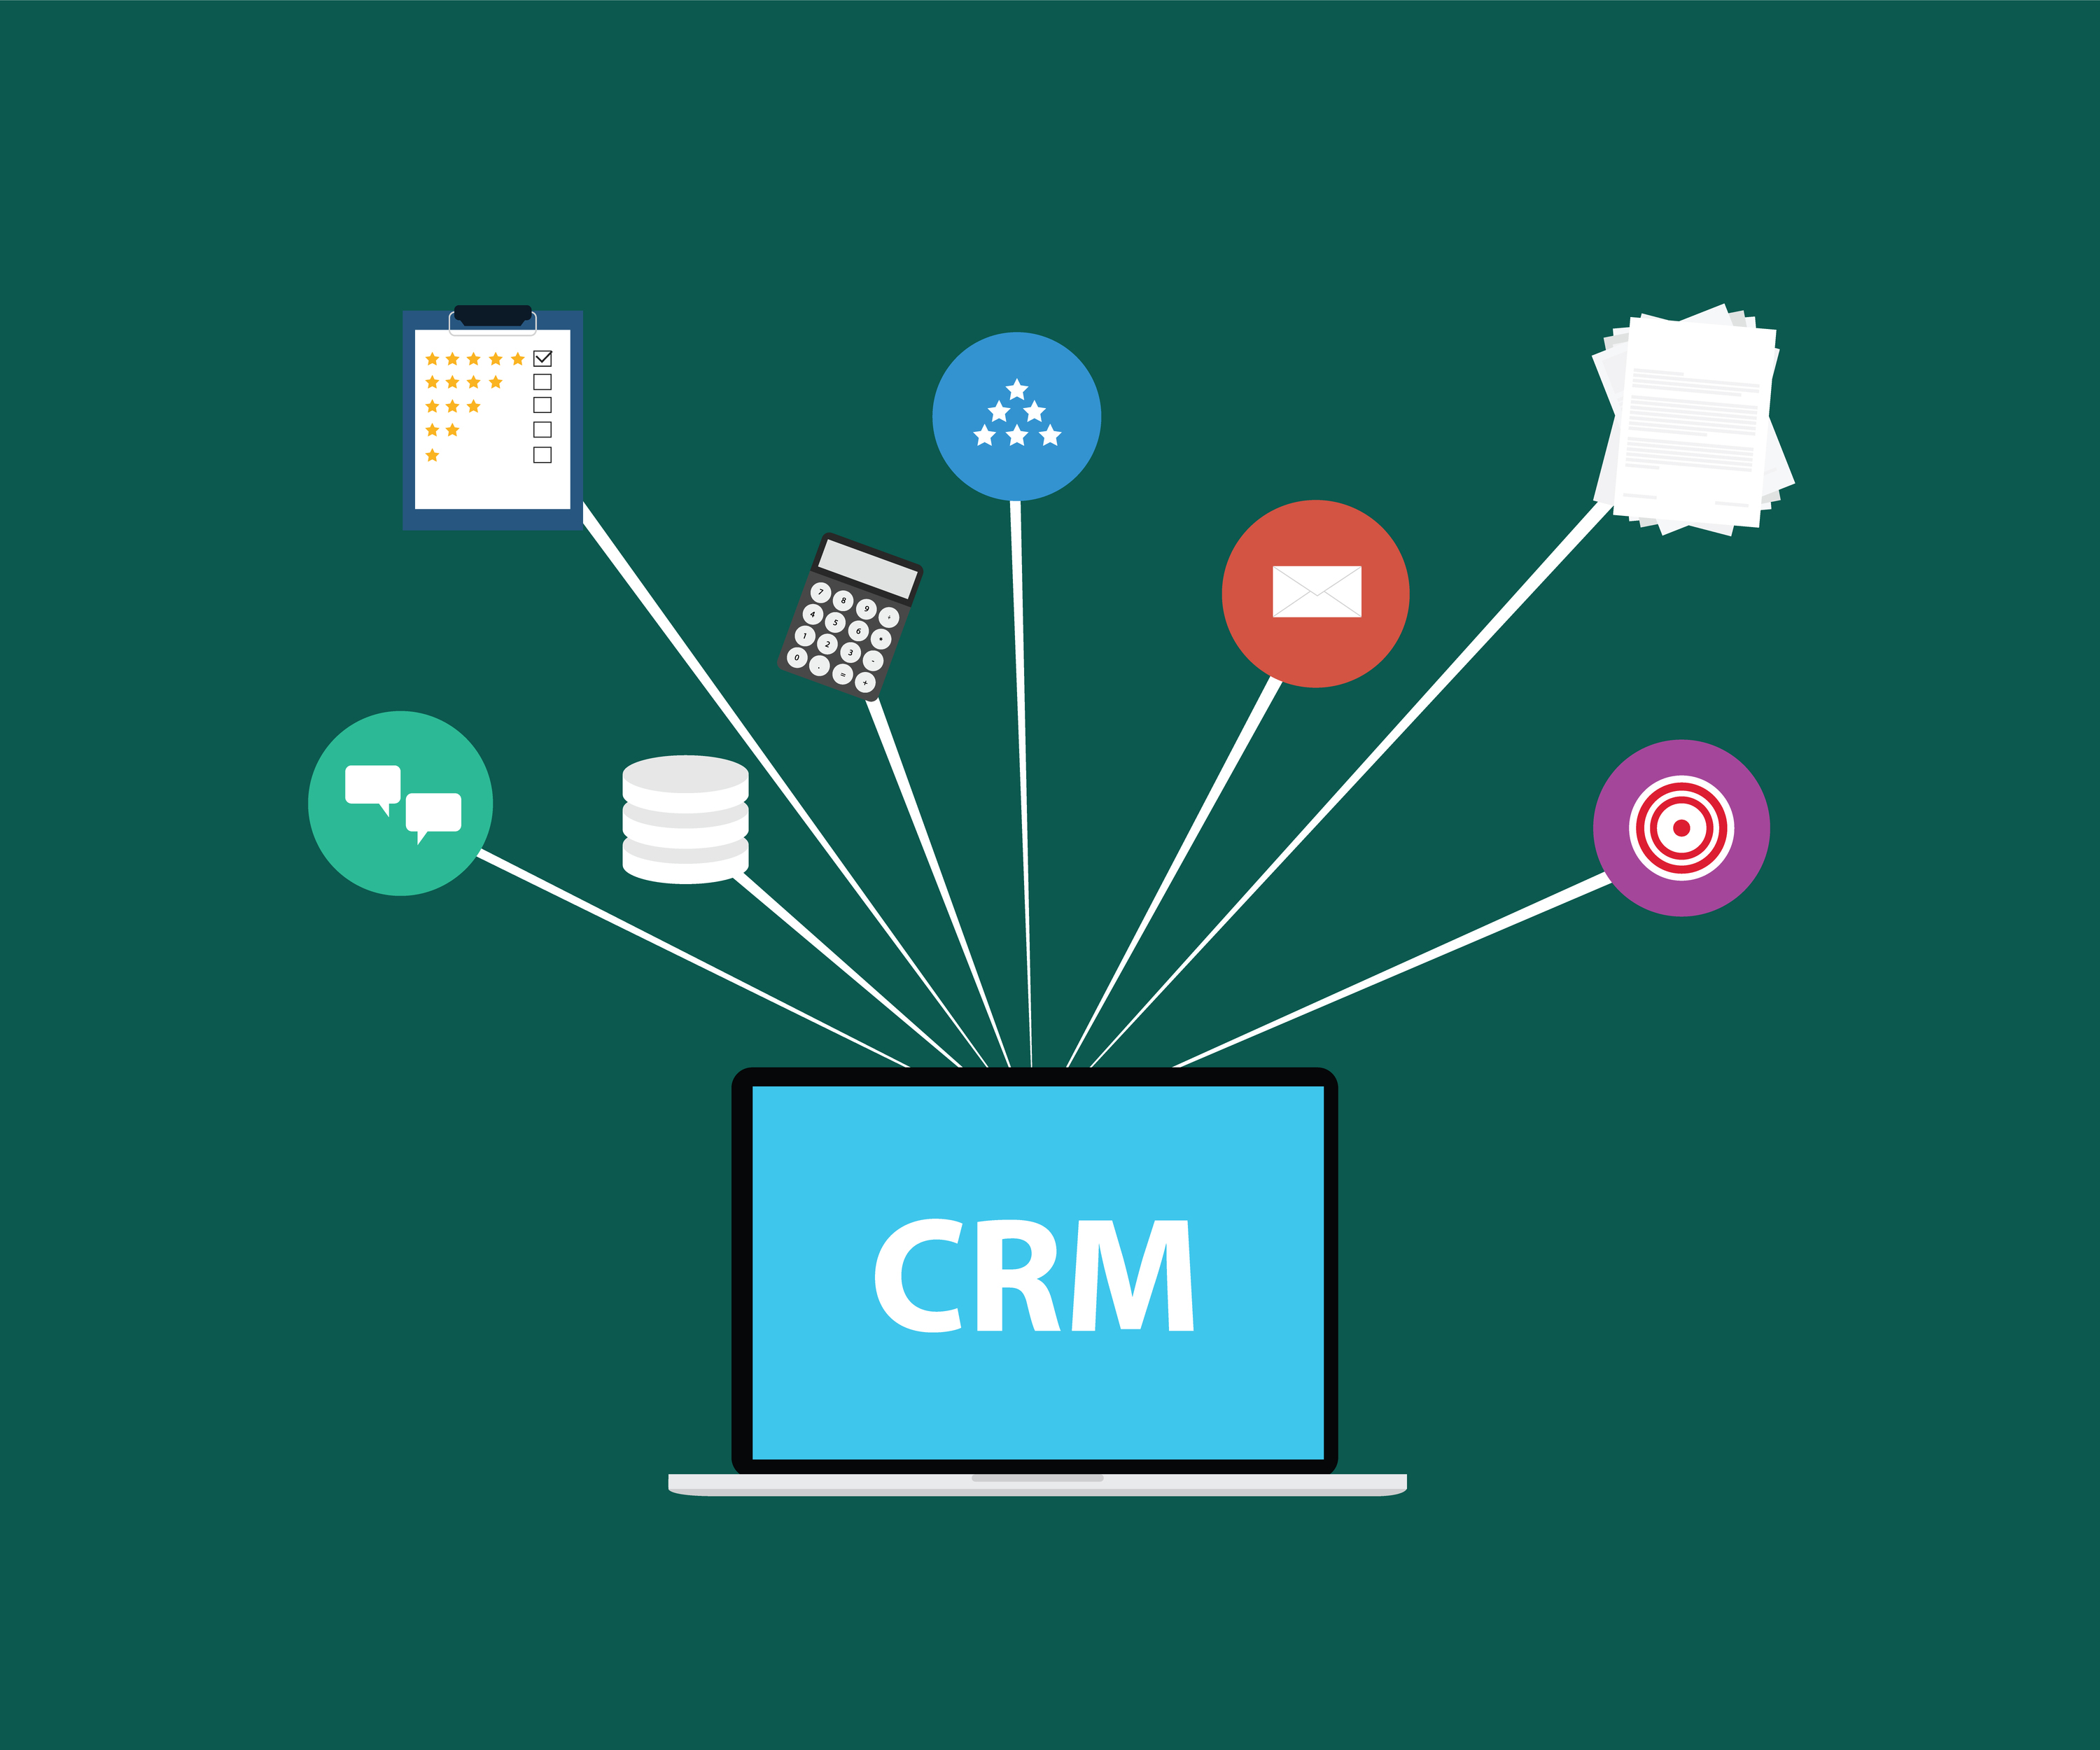 customer relationships management If you're looking for a customer relationship management system, you aren't alone in fact, the demand for crm technologies is fueling growth in the crm industry worth over $40 billion in 2018 alone, according to.